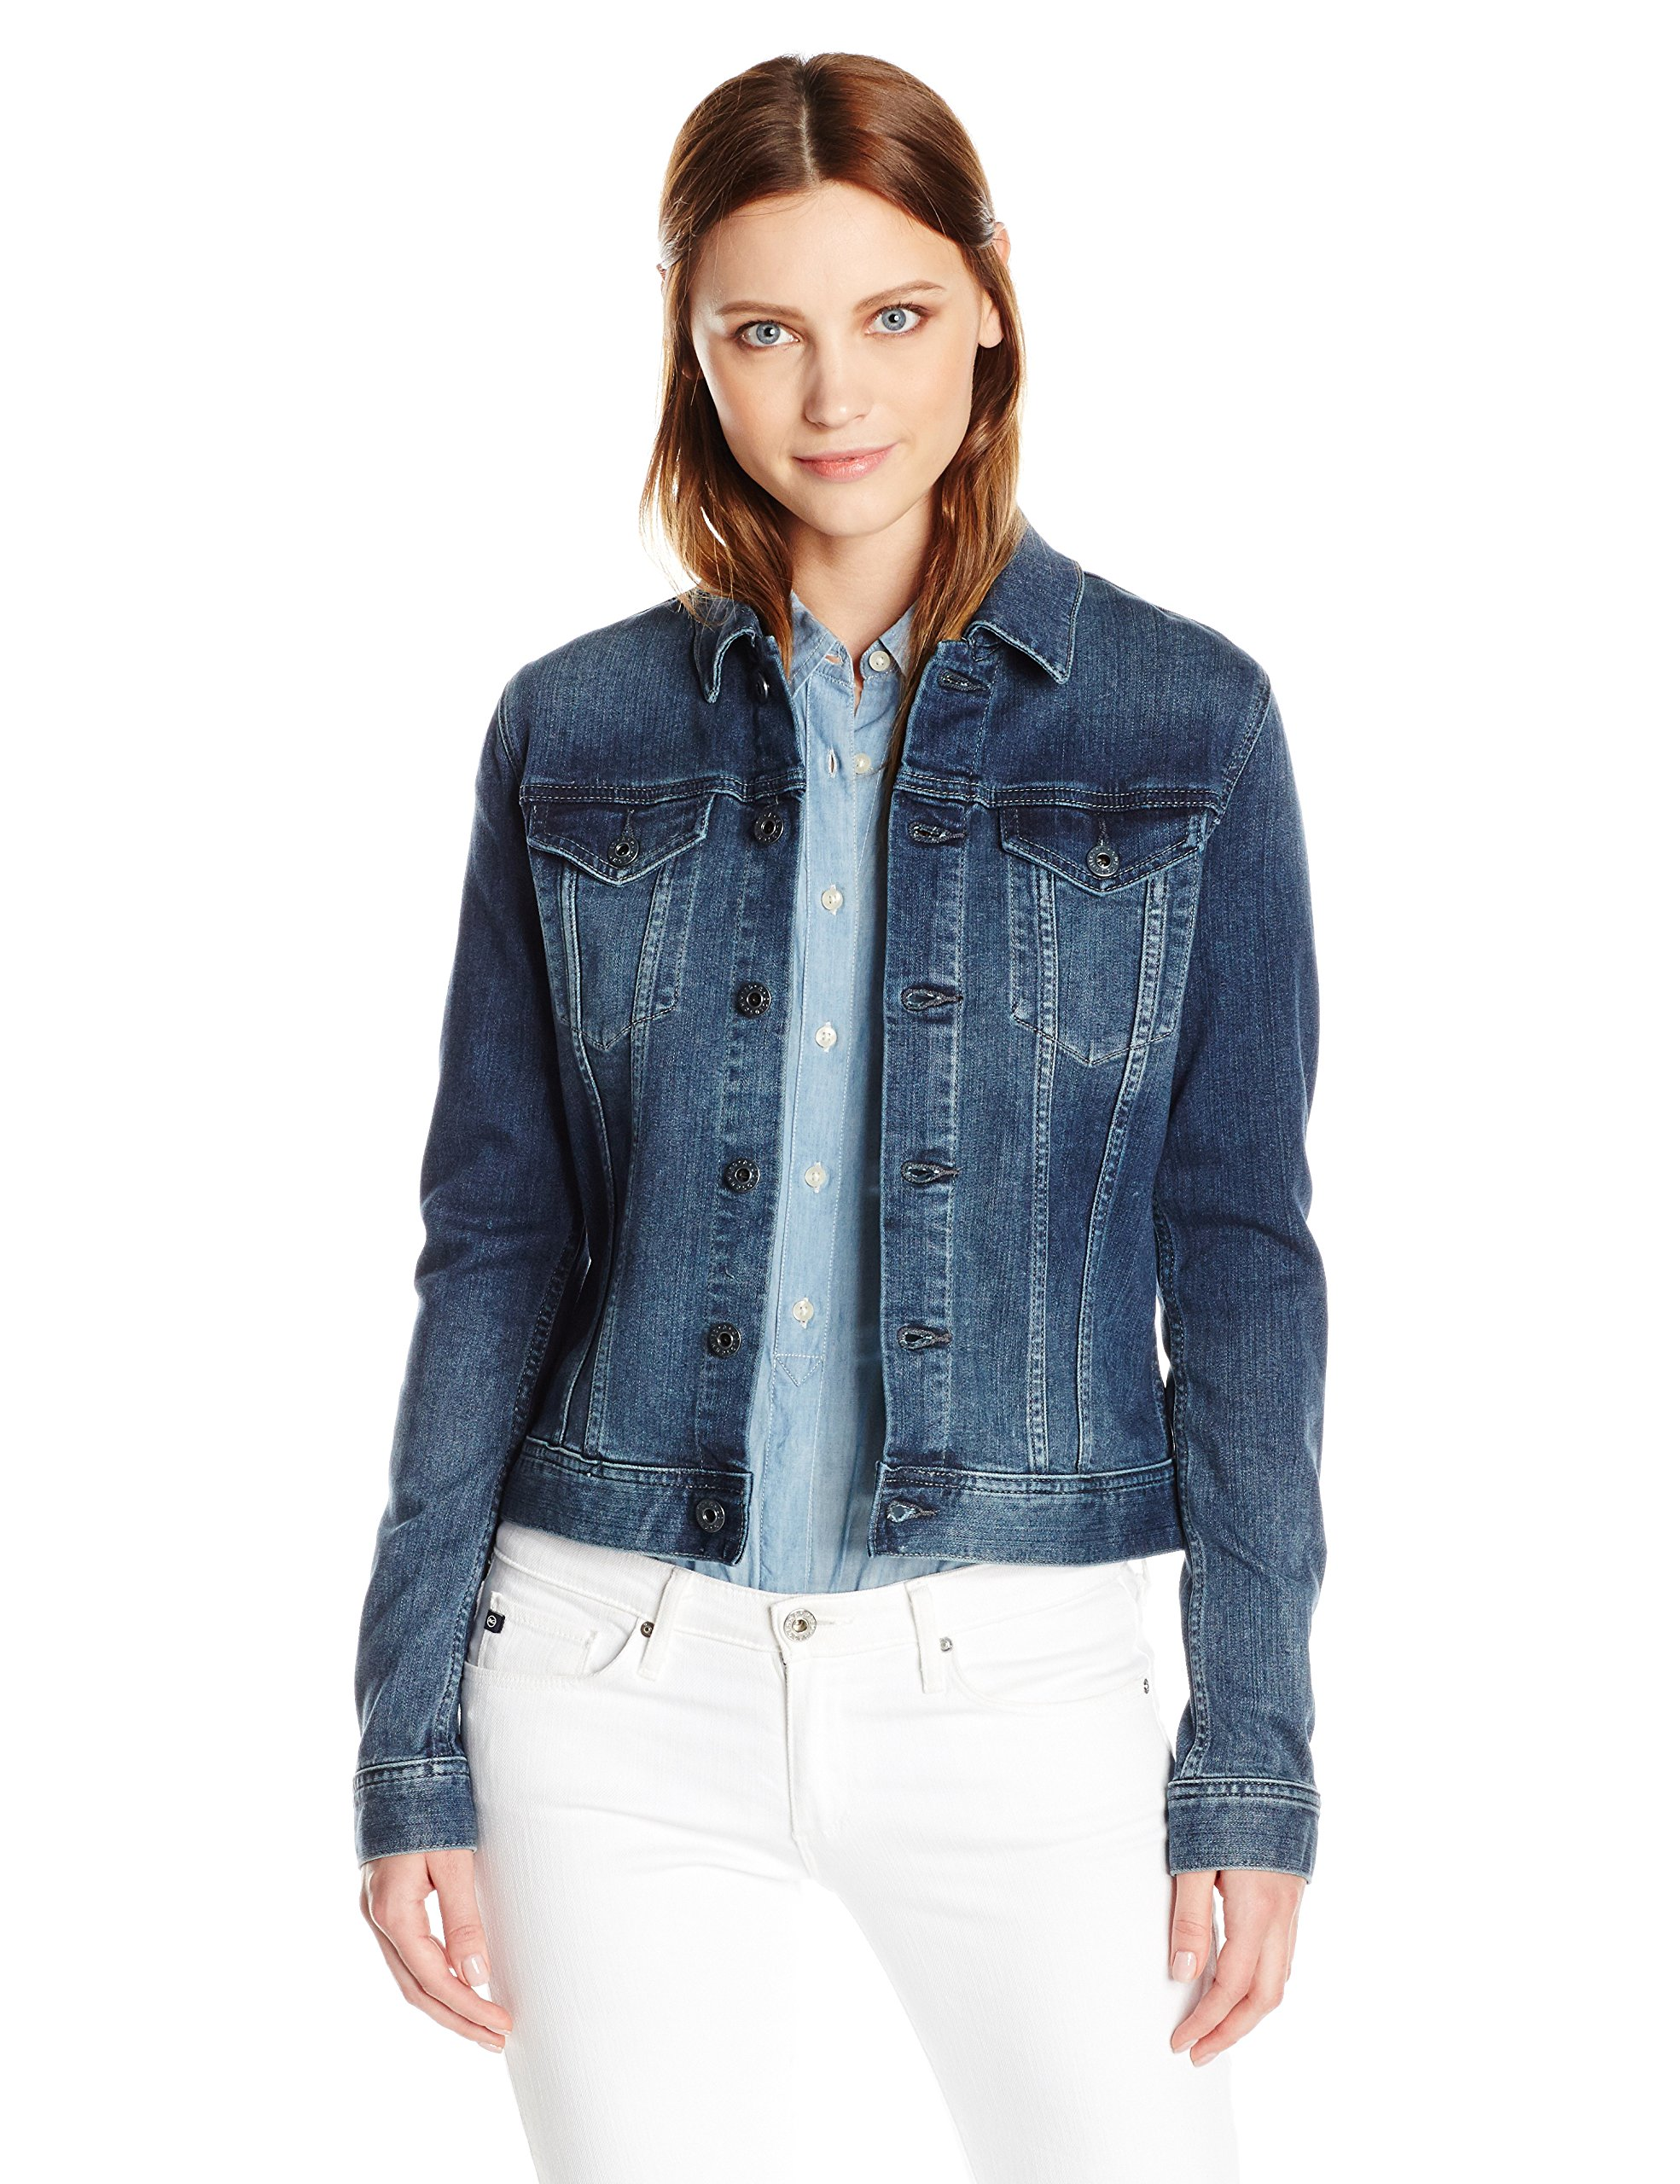 AG Adriano Goldschmied Women's The Robyn Denim Jacket, Blue Cove, Small